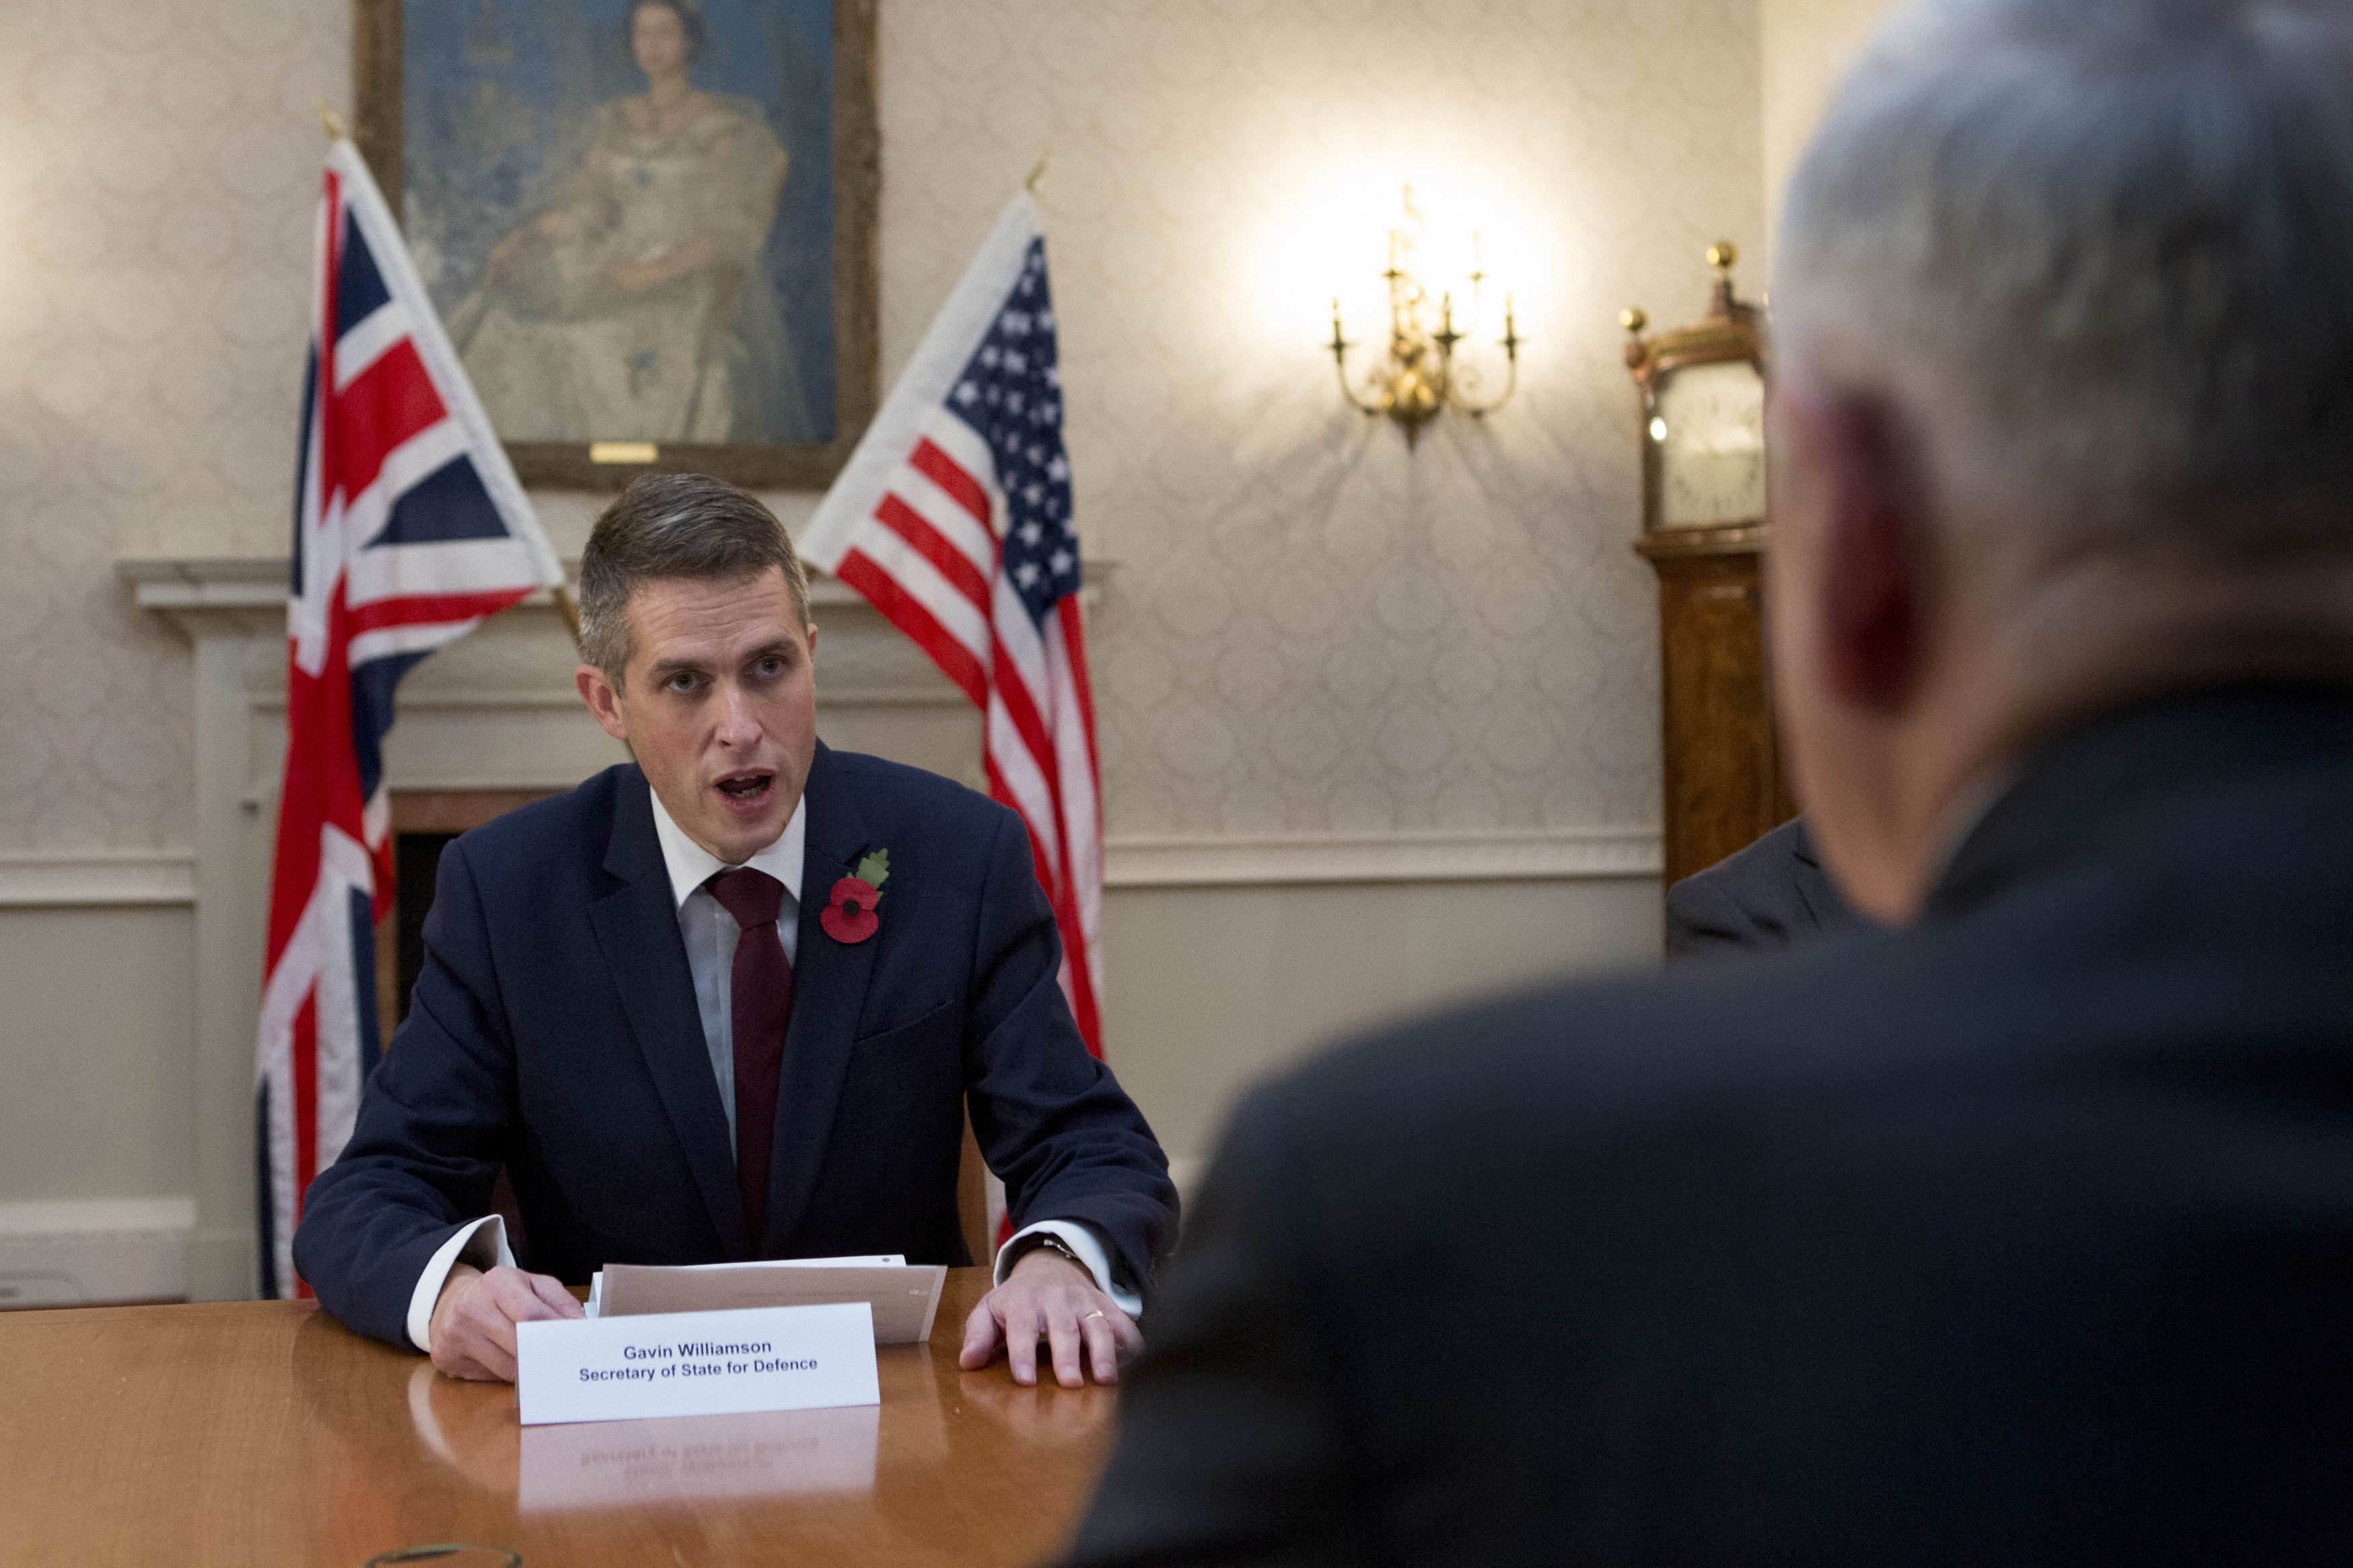 Defence Secretary Gavin Williamson and US Defence Secretary James Mattis during a bilateral meeting at the Ministry of Defence in London, following NATO and counter-Daesh talks in Brussels.